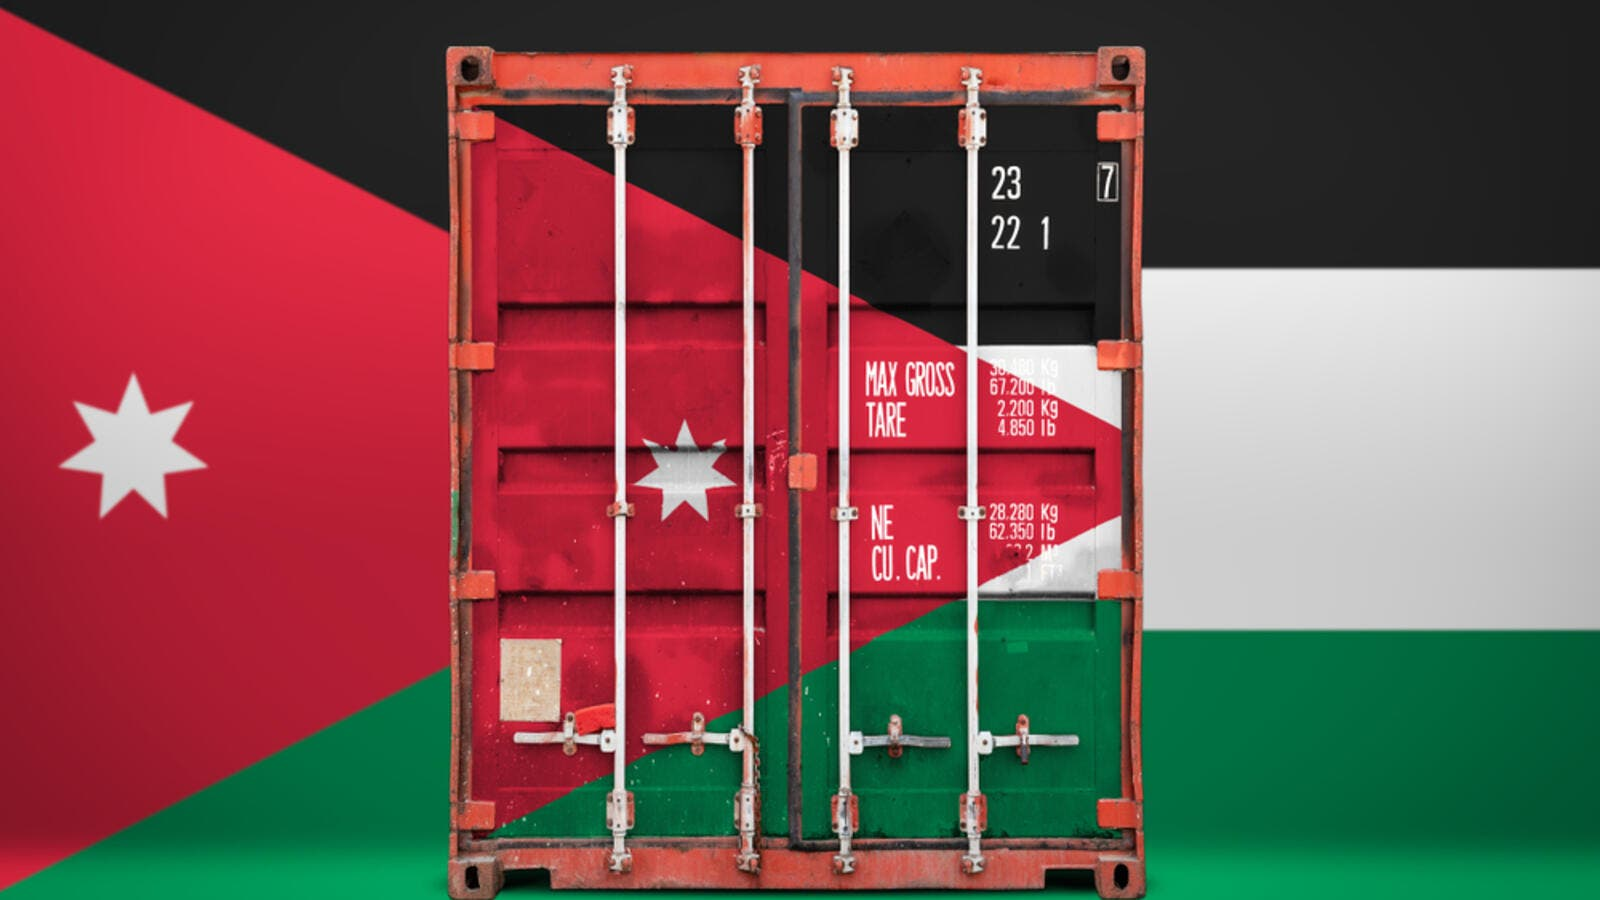 Jordan's exports to North American Free Trade Agreement (NAFTA) countries have increased by 2.5 per cent, including to the US by 3 per cent.